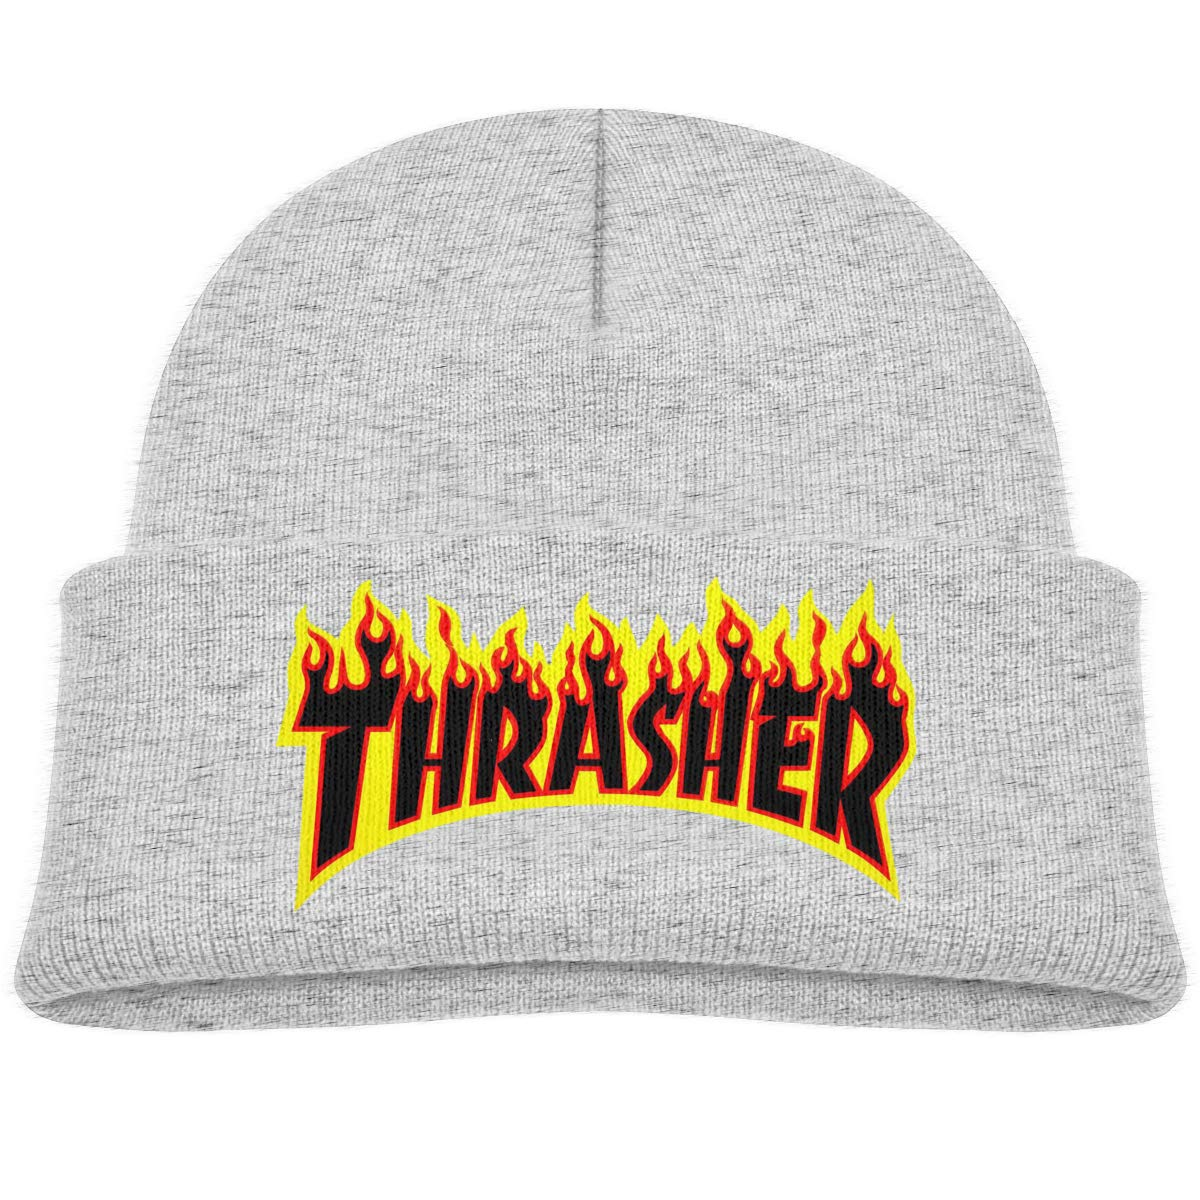 Kids Hats Hedging Thrasher Magazine Winter Warm Classic Knitted Cap Soft Beanies